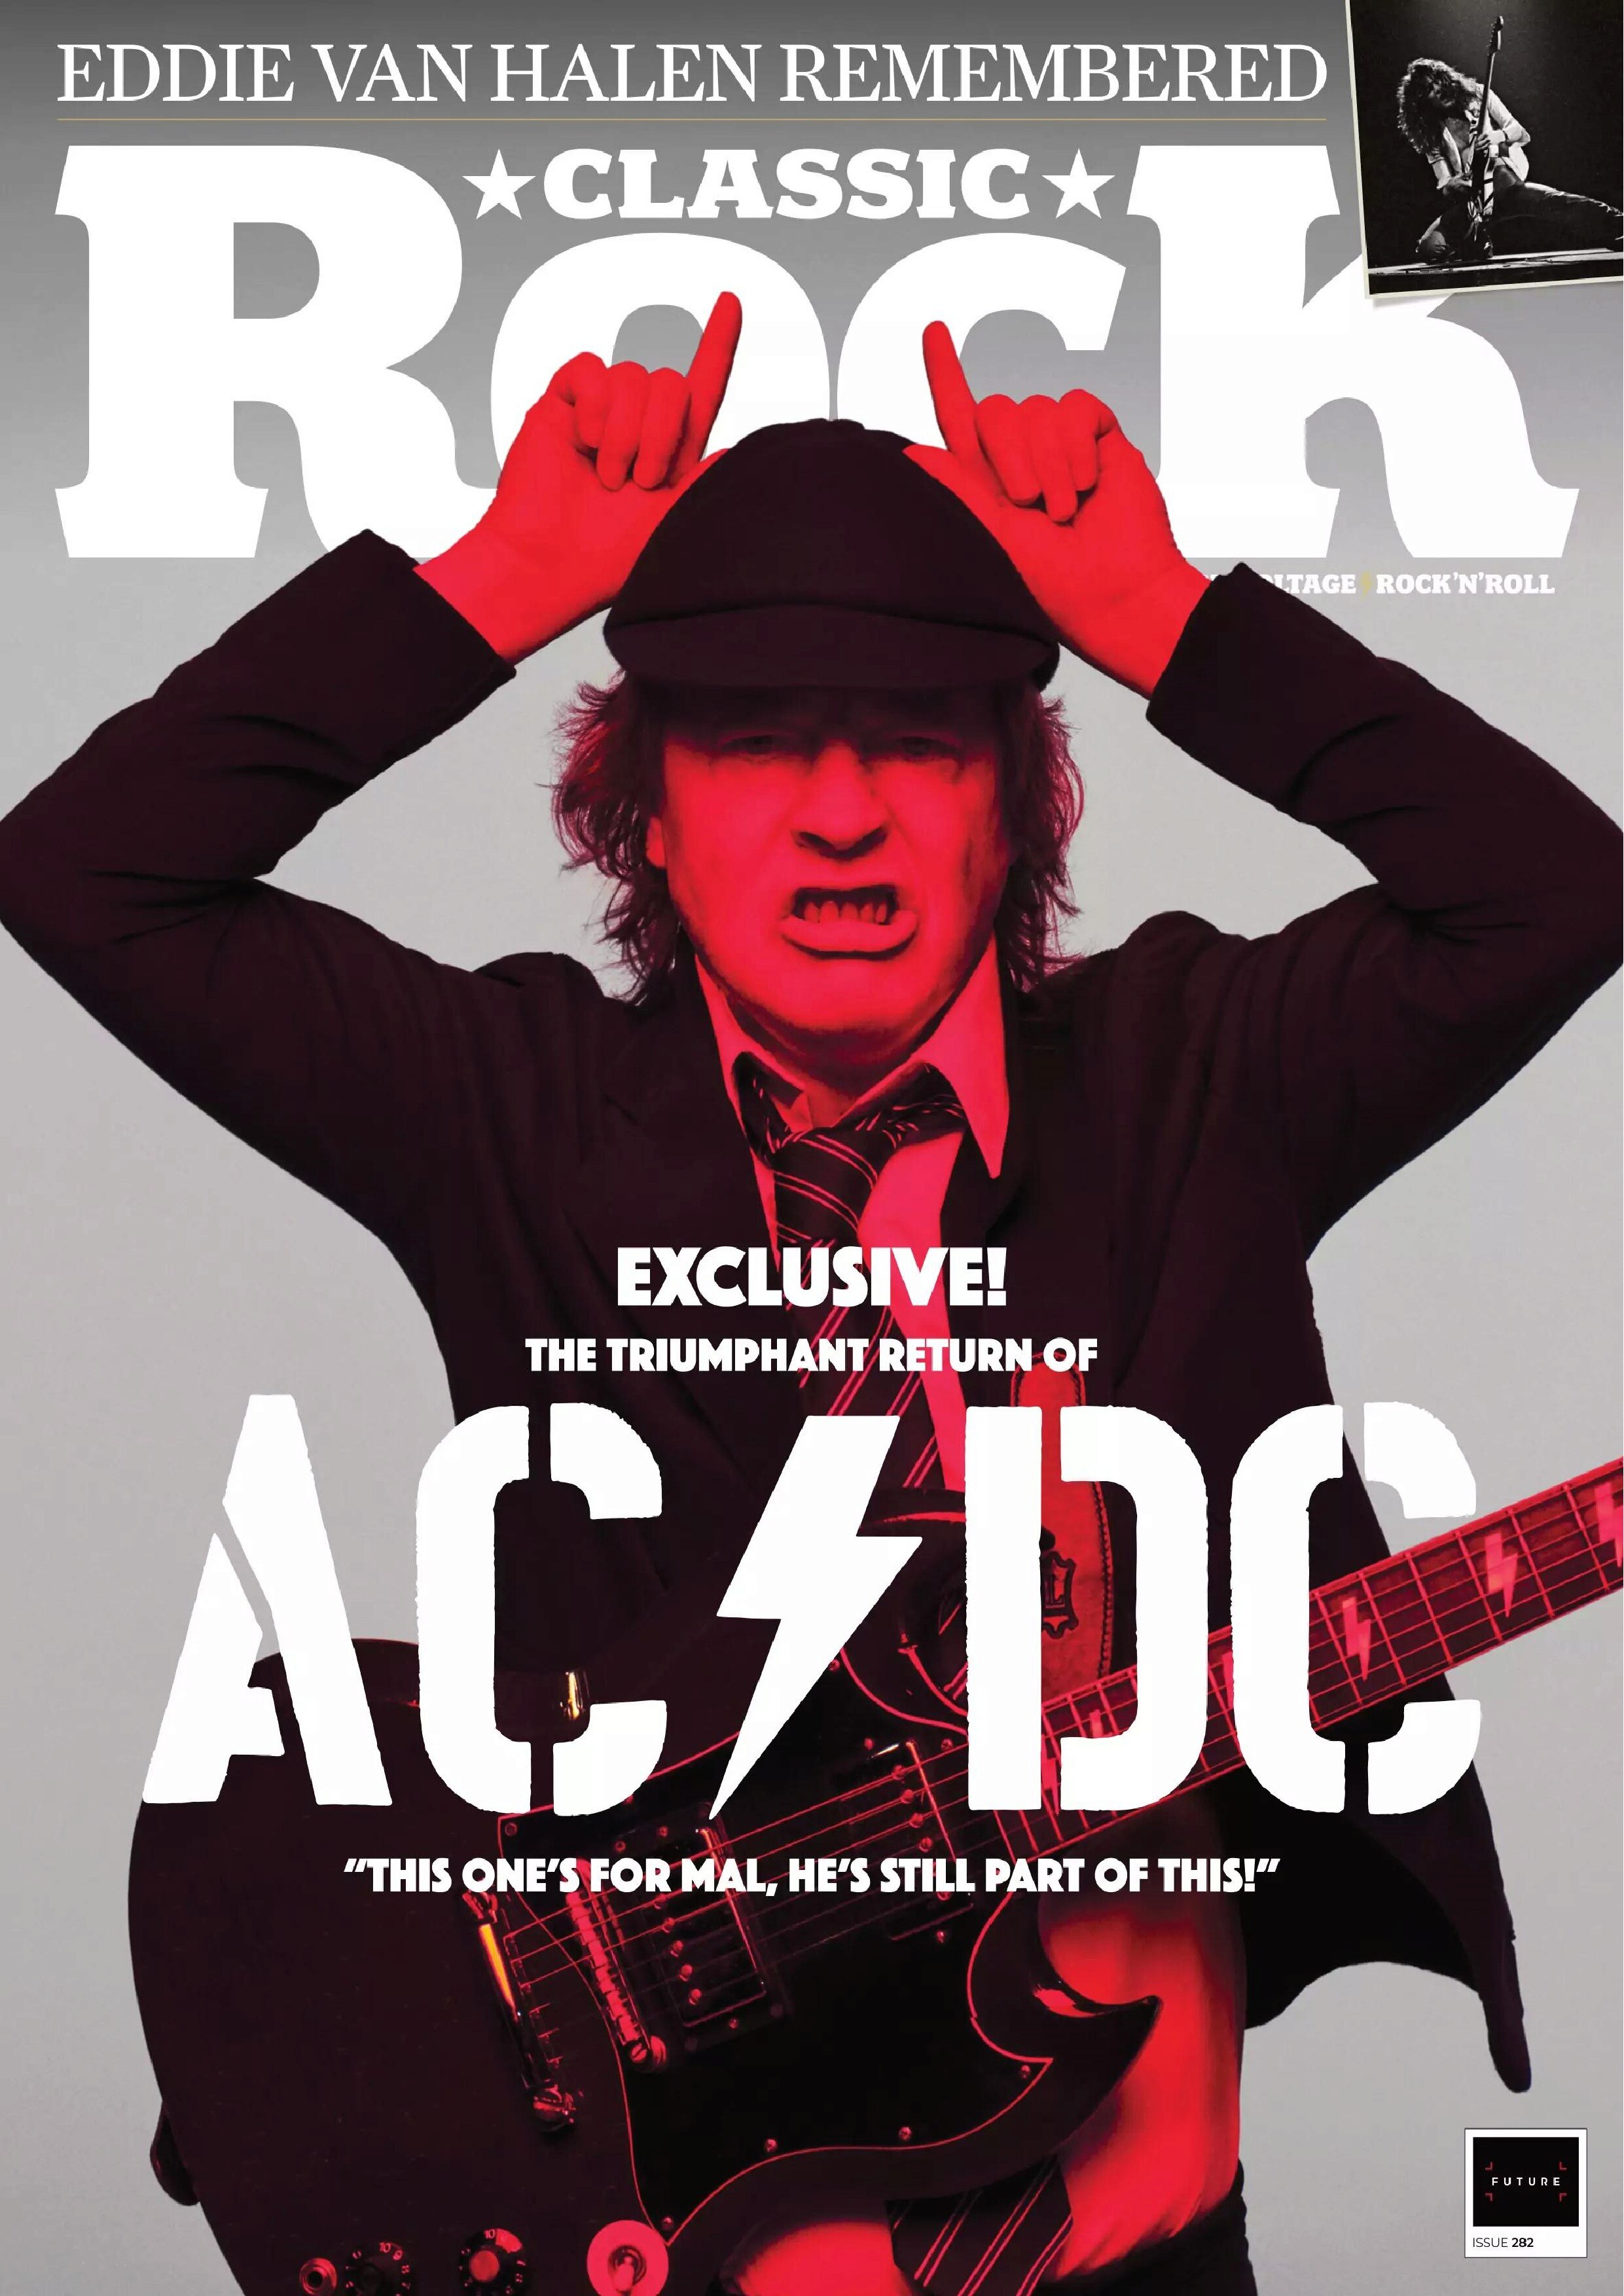 ACDC Power Up (2020) Hard-Rock Australie - Page 3 Cl_ic_11